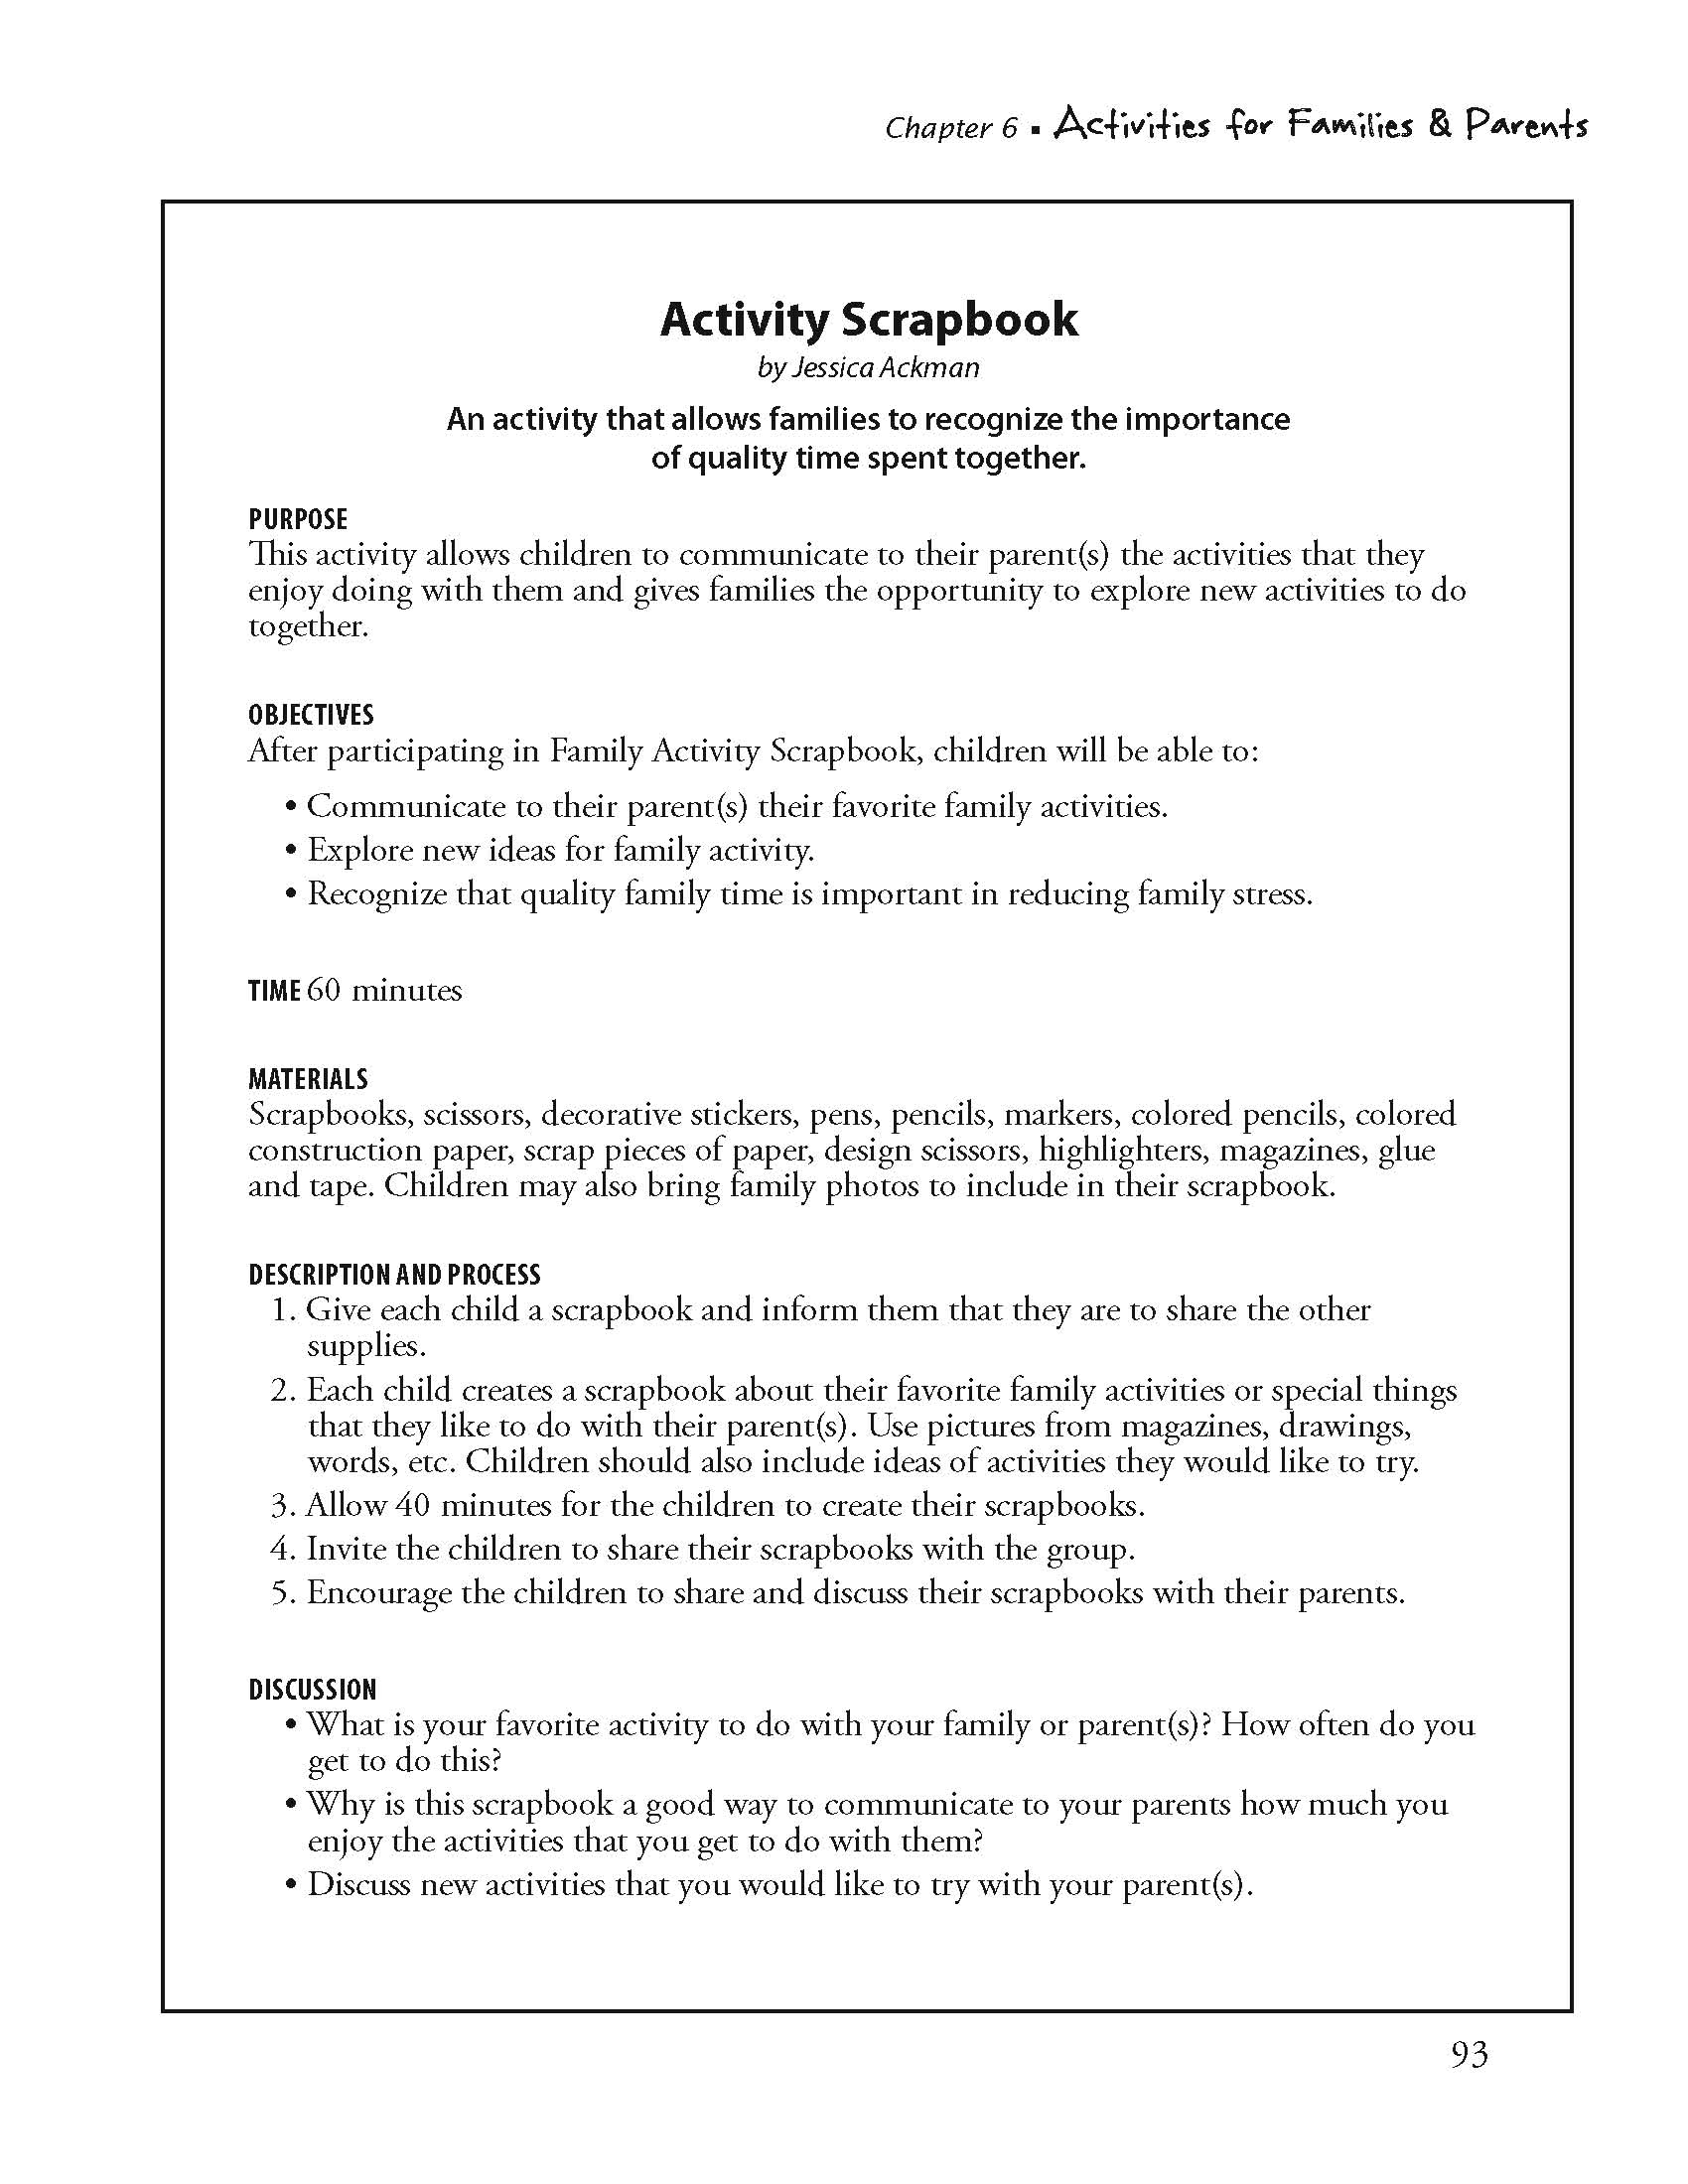 Activity Scrapbook